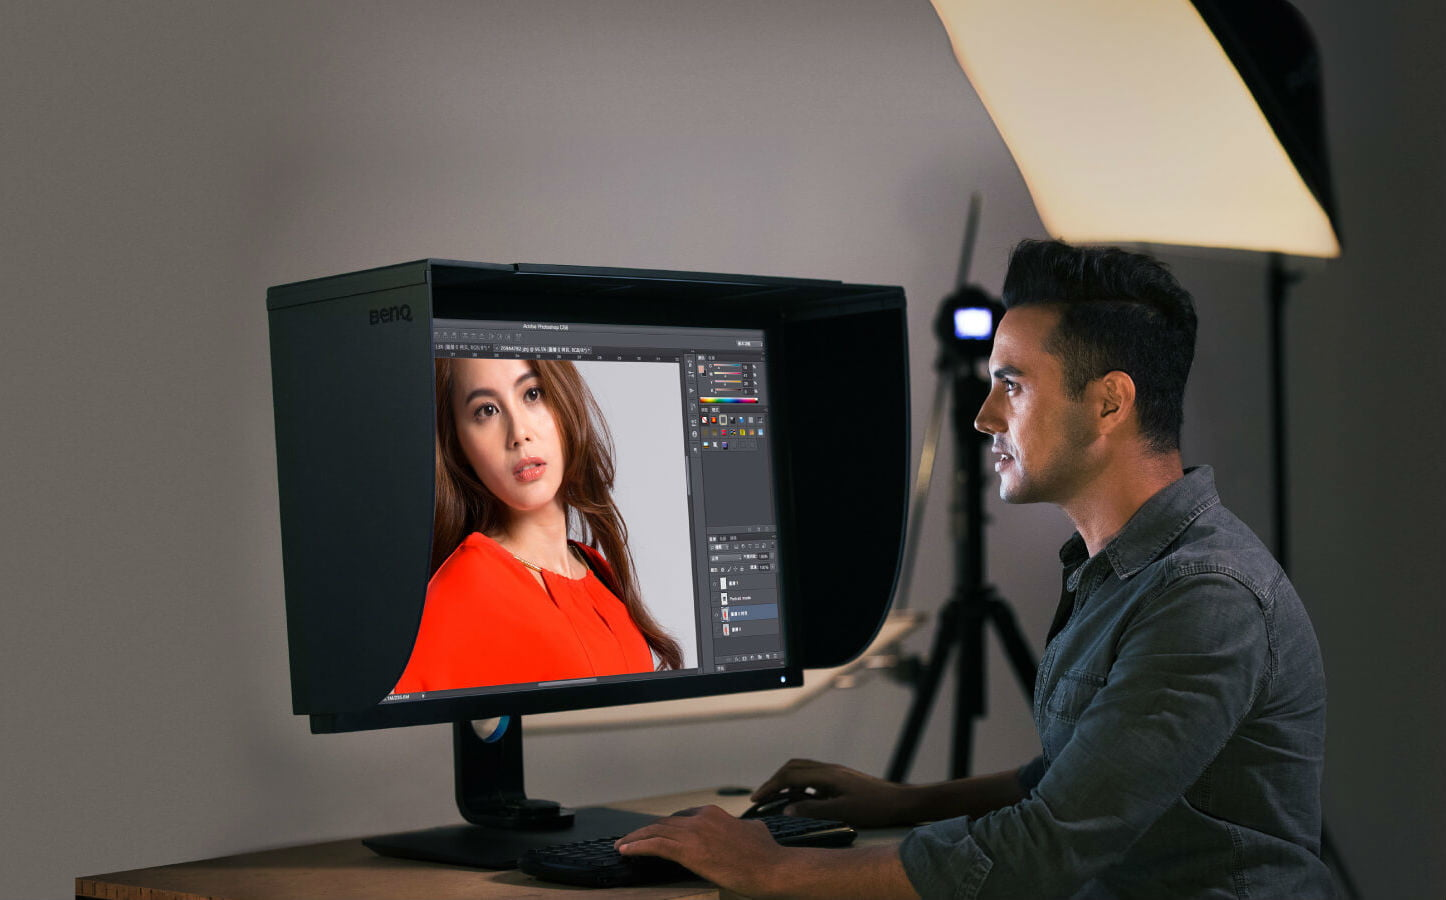 best monitor for photo editing shading hood2